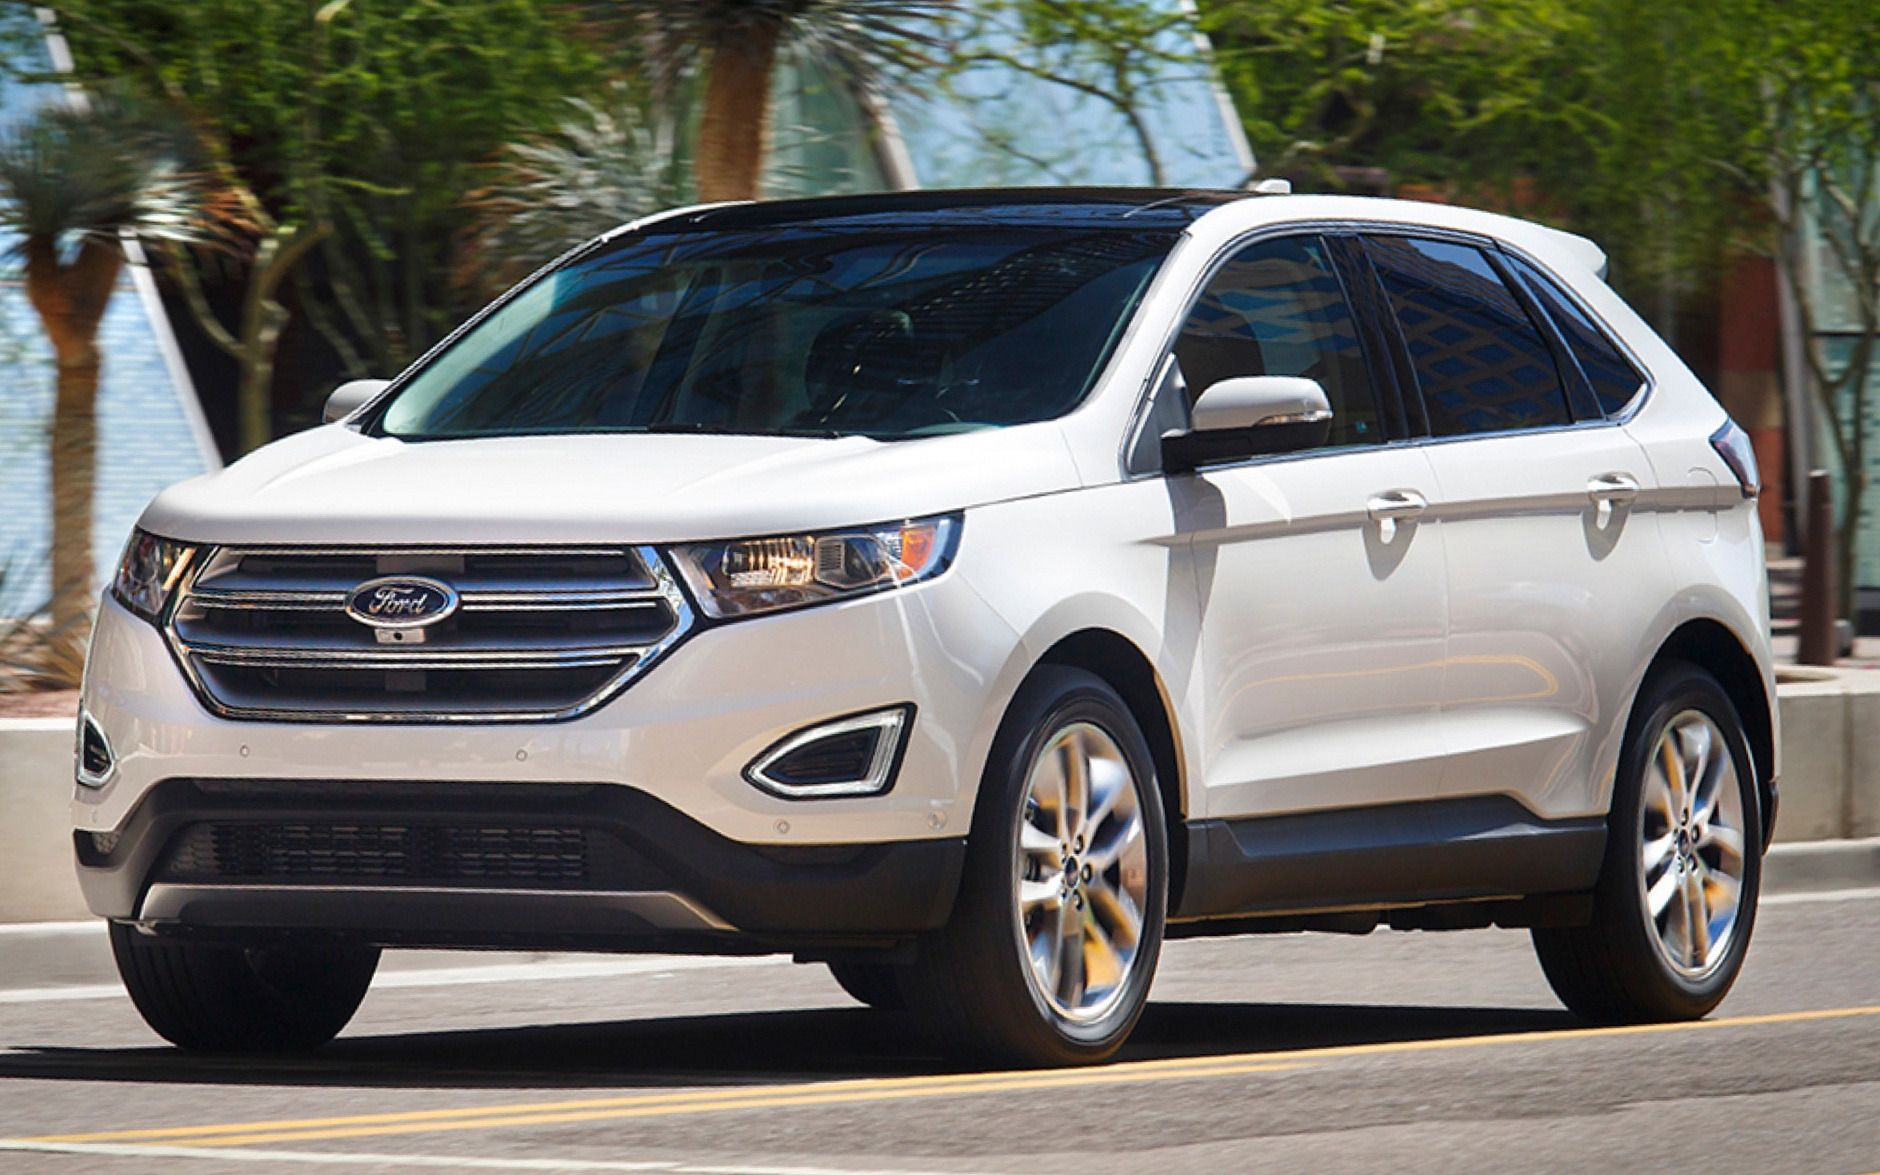 2016 Ford Edge Ford Edge Ford Suv 2016 Ford Edge